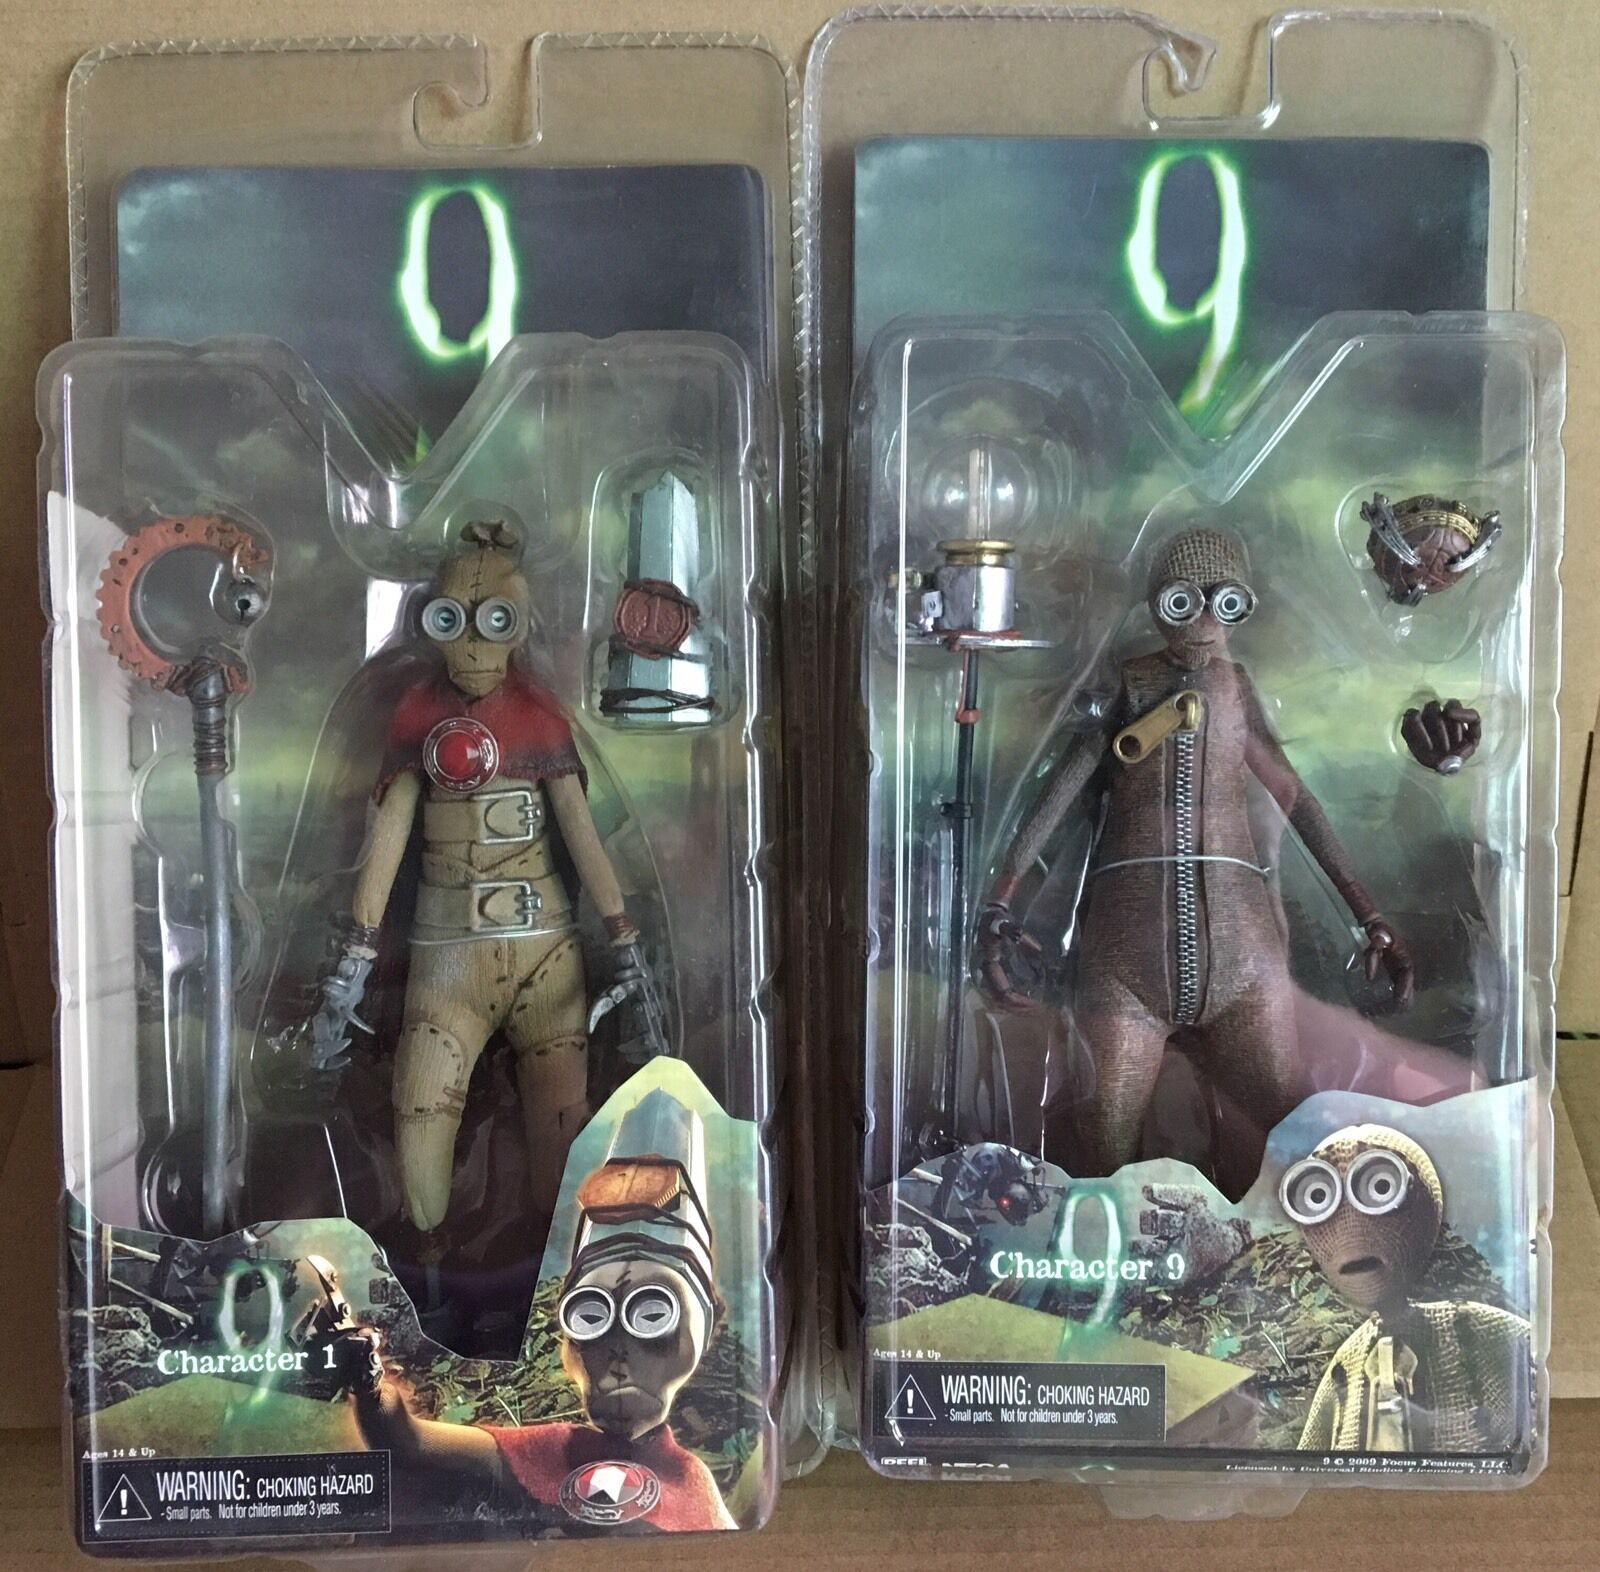 Lot of 2 CHARACTER 9 NECA NINE 1 ONE and NINE Action Figures Tim Burton 2009